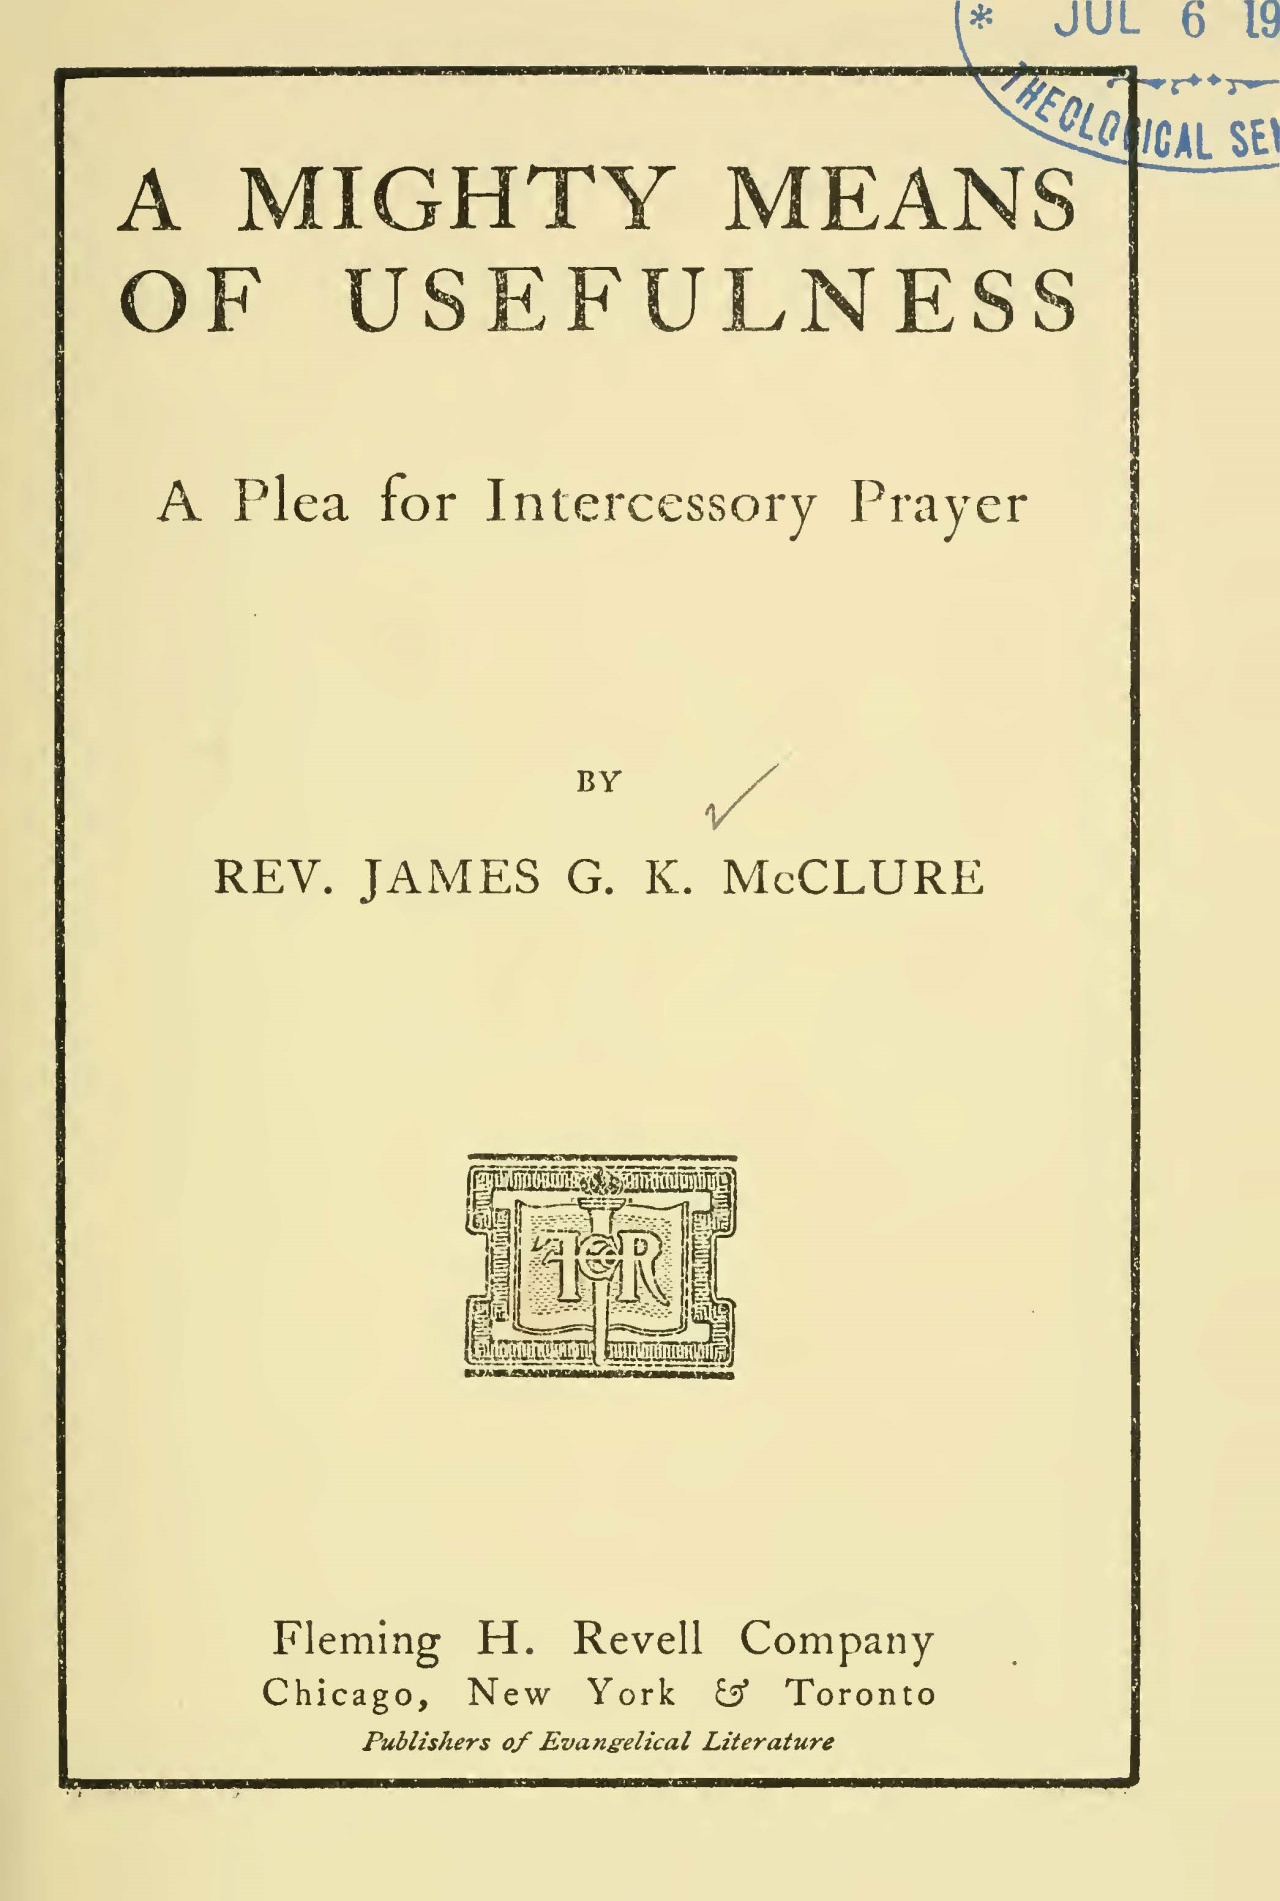 McClure, Sr., James Gore King, A Mighty Means of Usefulness Title Page.jpg